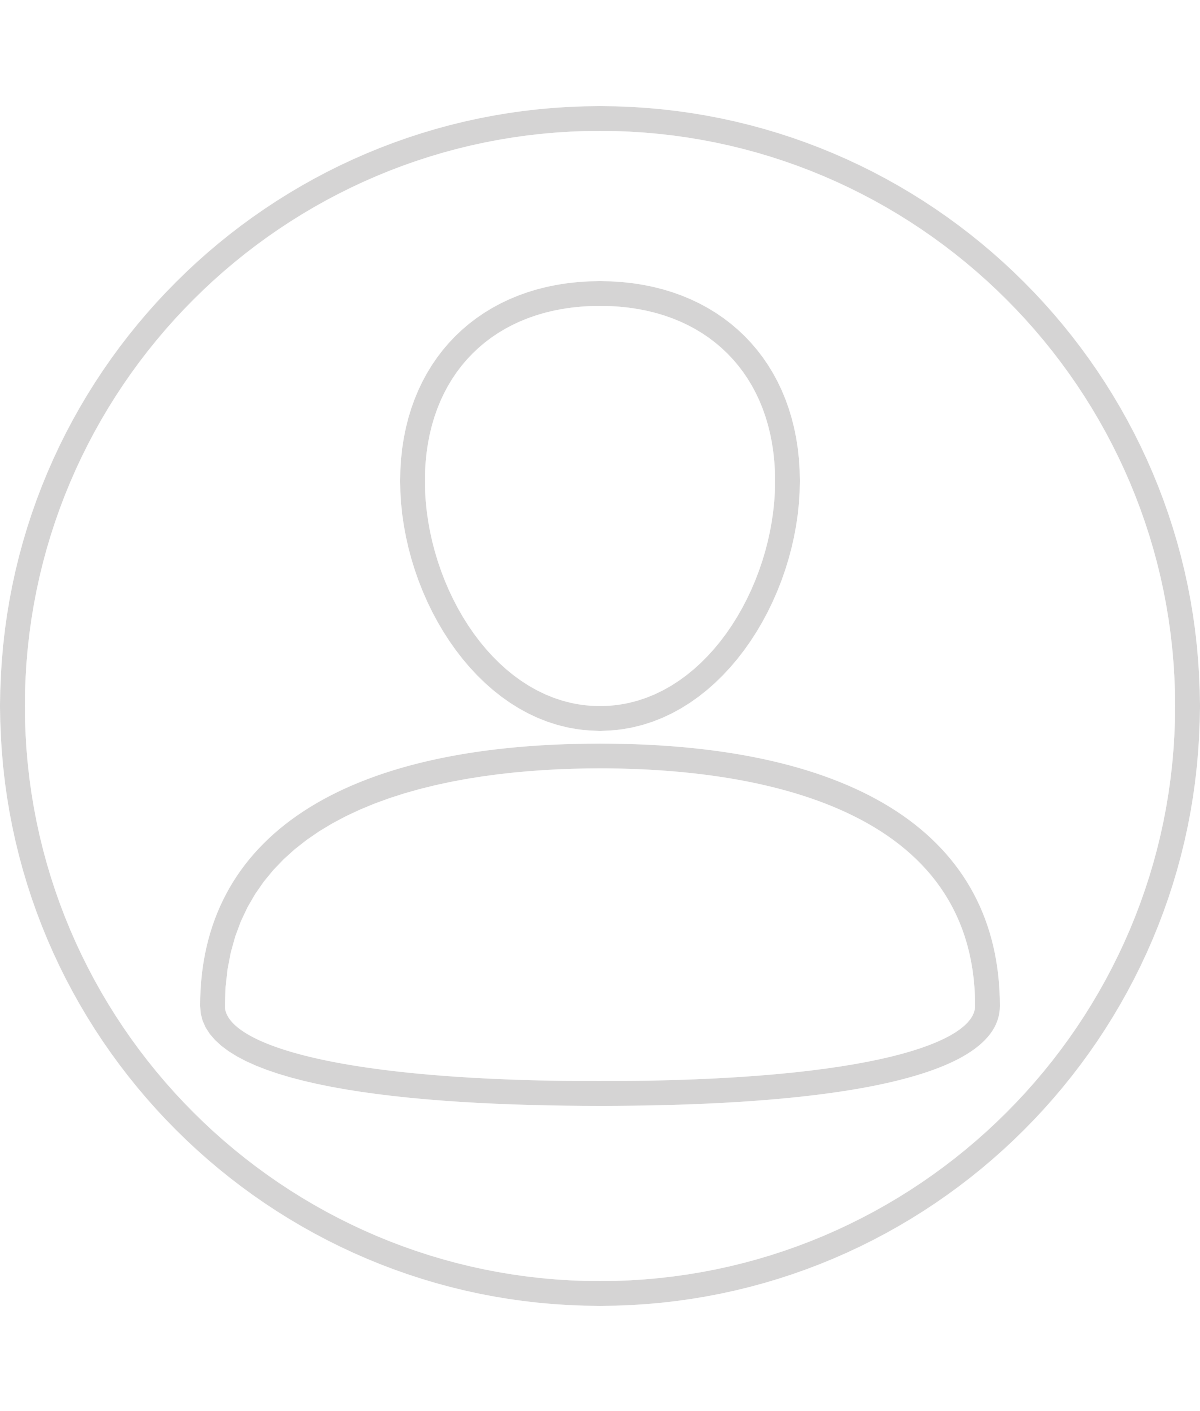 placeholder icon used in lieu of a photograph of Nathan Rulf